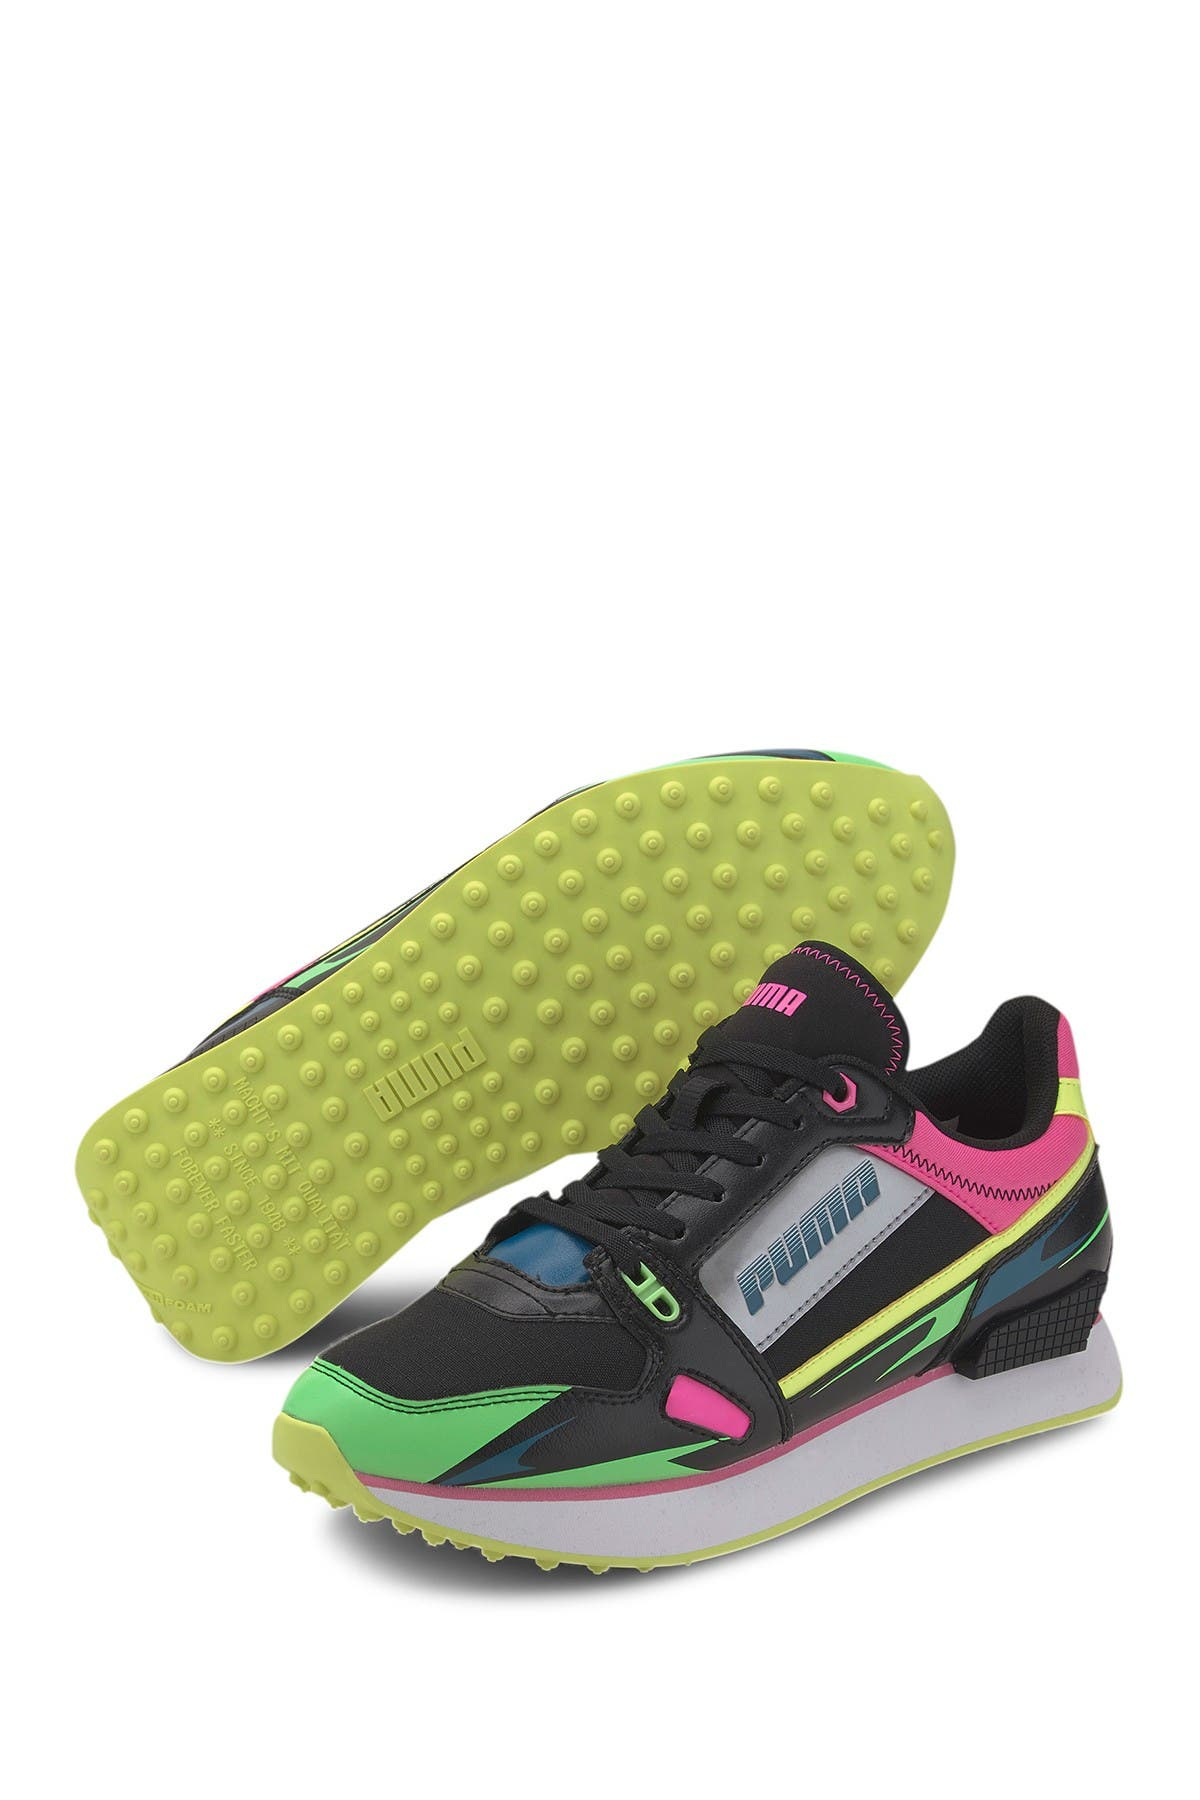 Image of PUMA Mile Rider Sunny Gateway Sneaker